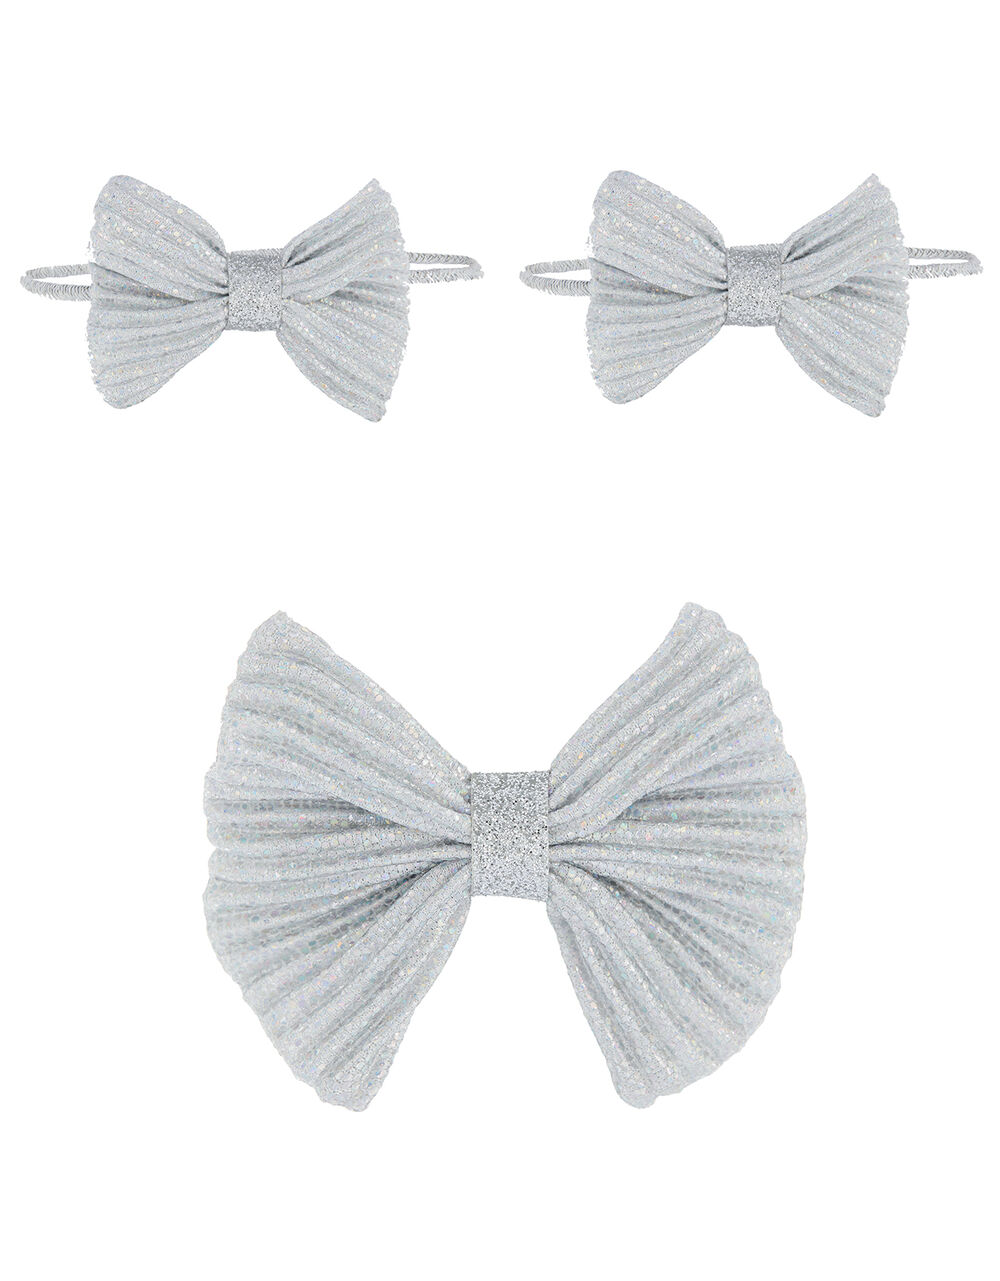 Shimmer Bow Hair Accessory Set, , large